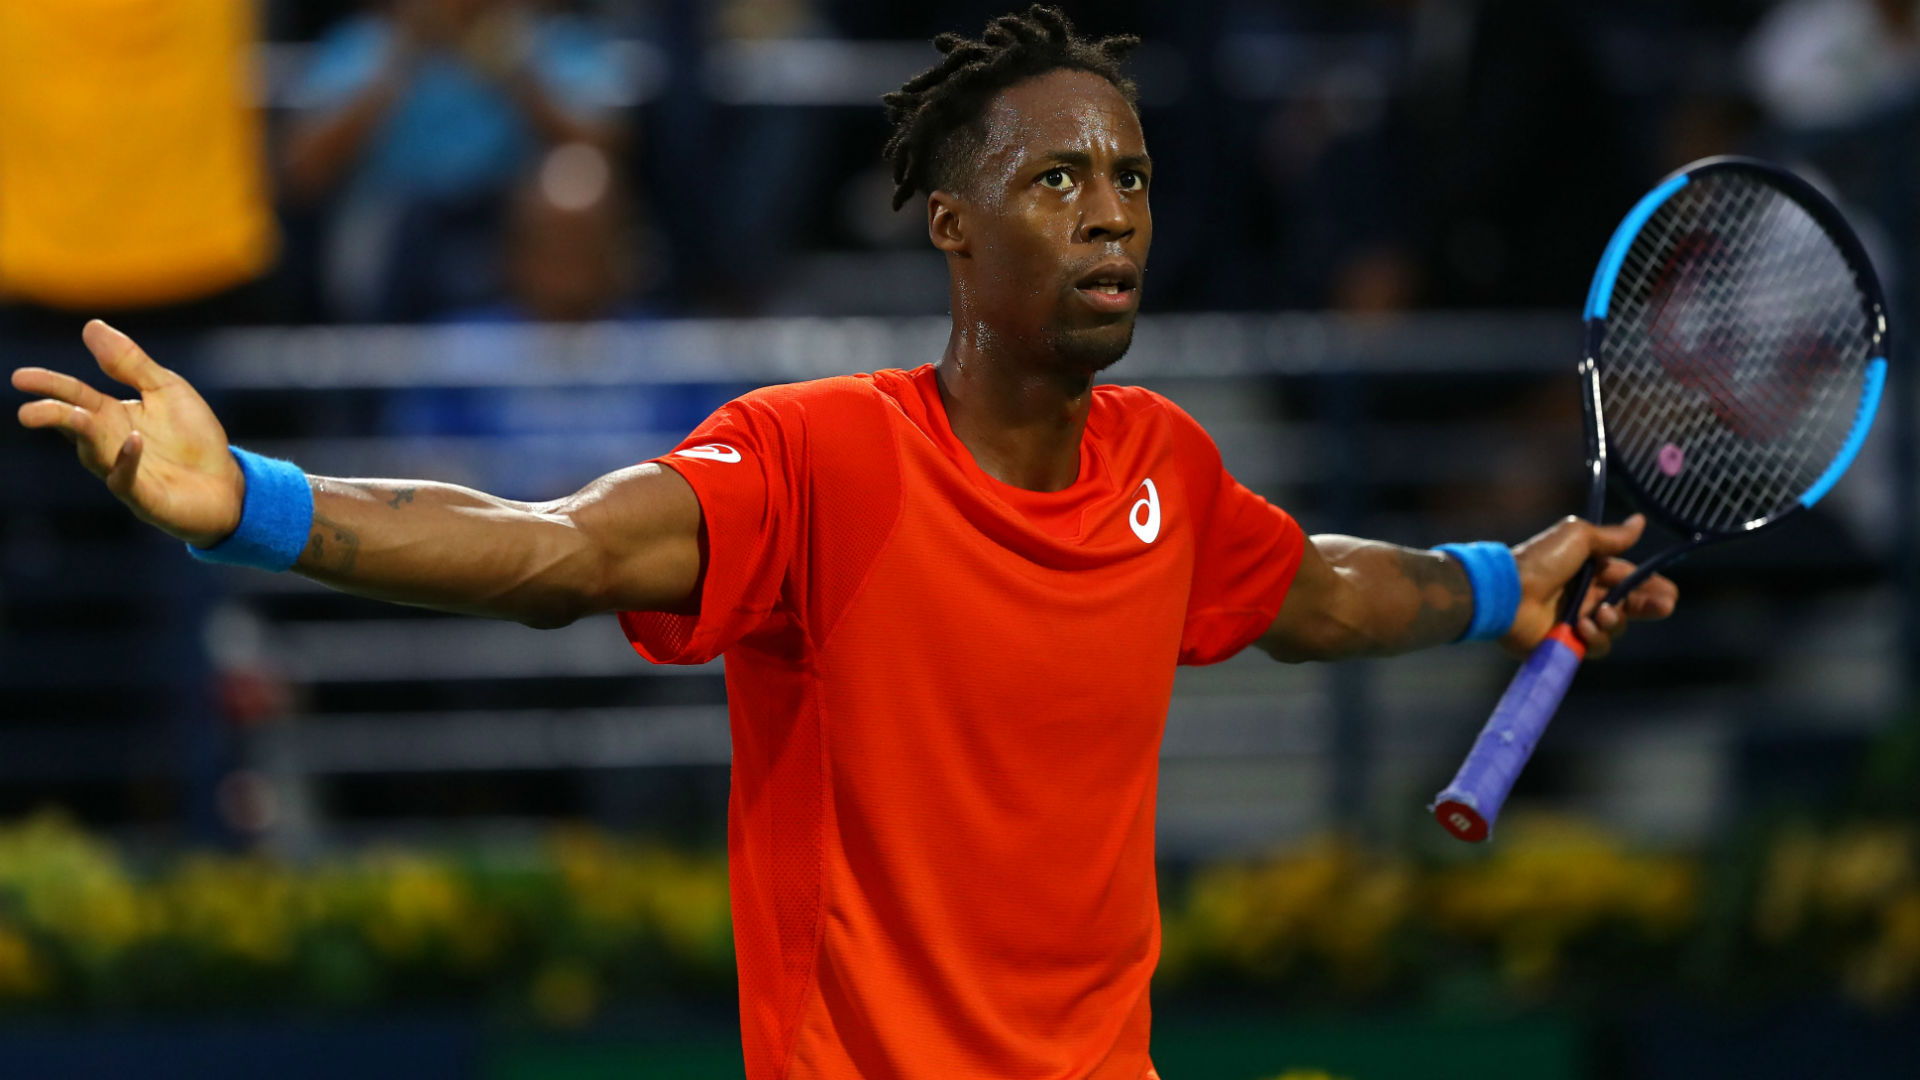 Monfils makes early Halle exit